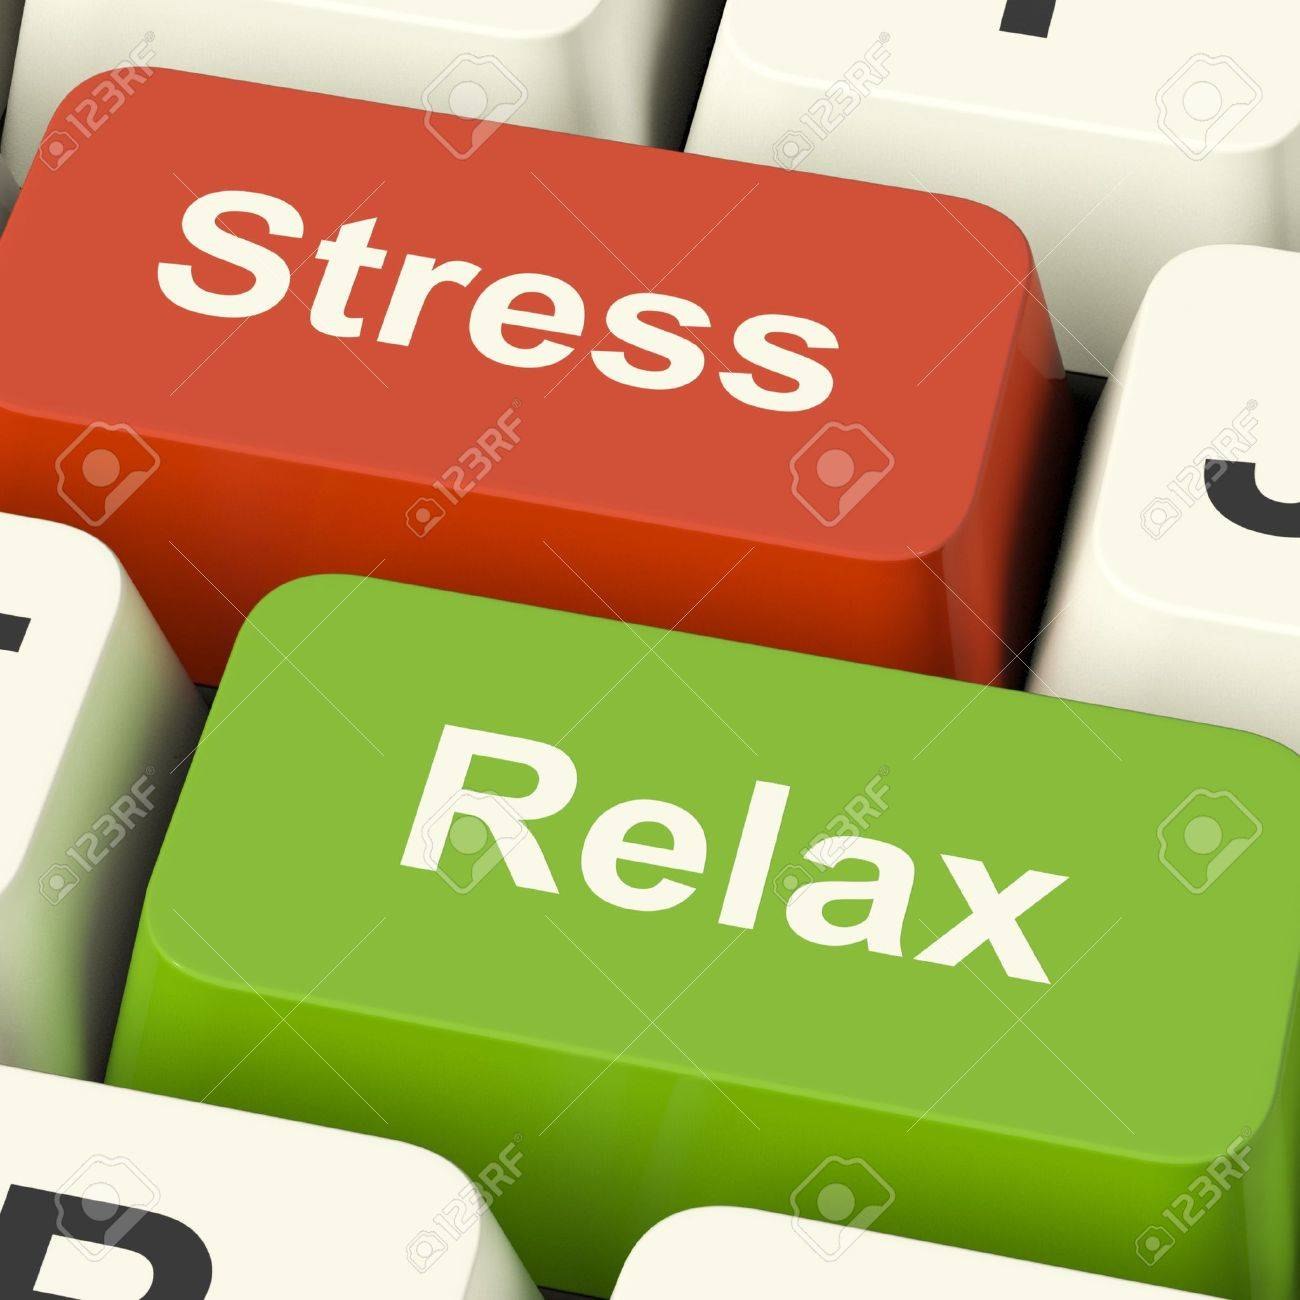 Stress Relax Computer Keys Shows Pressure Of Work Or Relaxation Online Stock Photo - 13482084